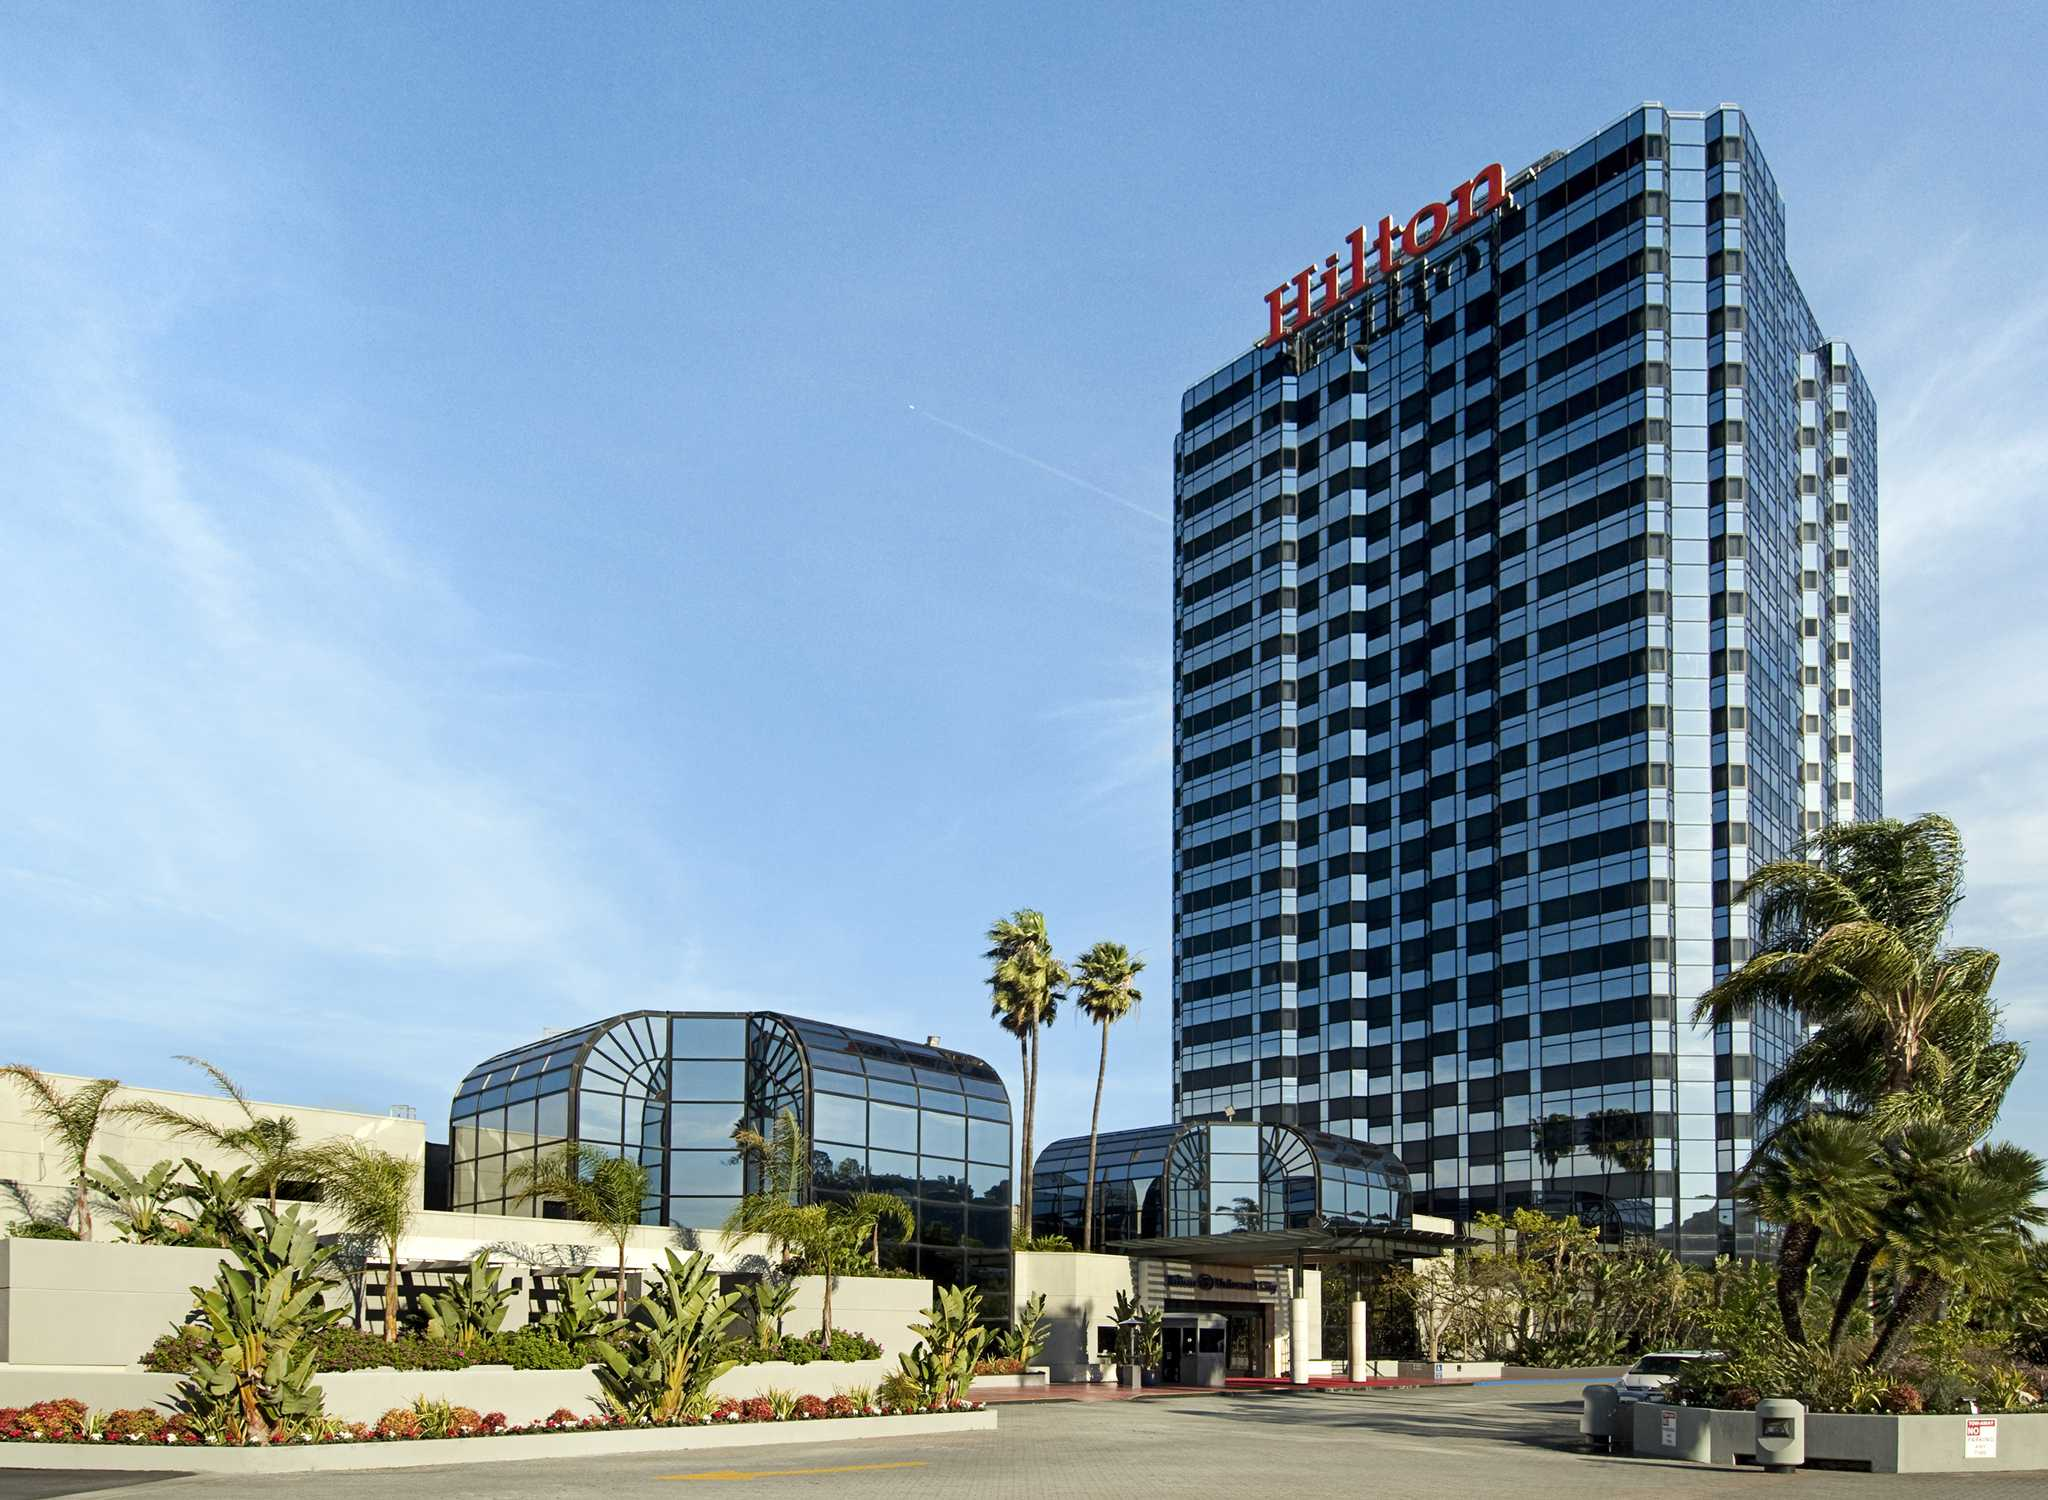 Hilton Los Angeles-Universal City, USA - Hotel exterior